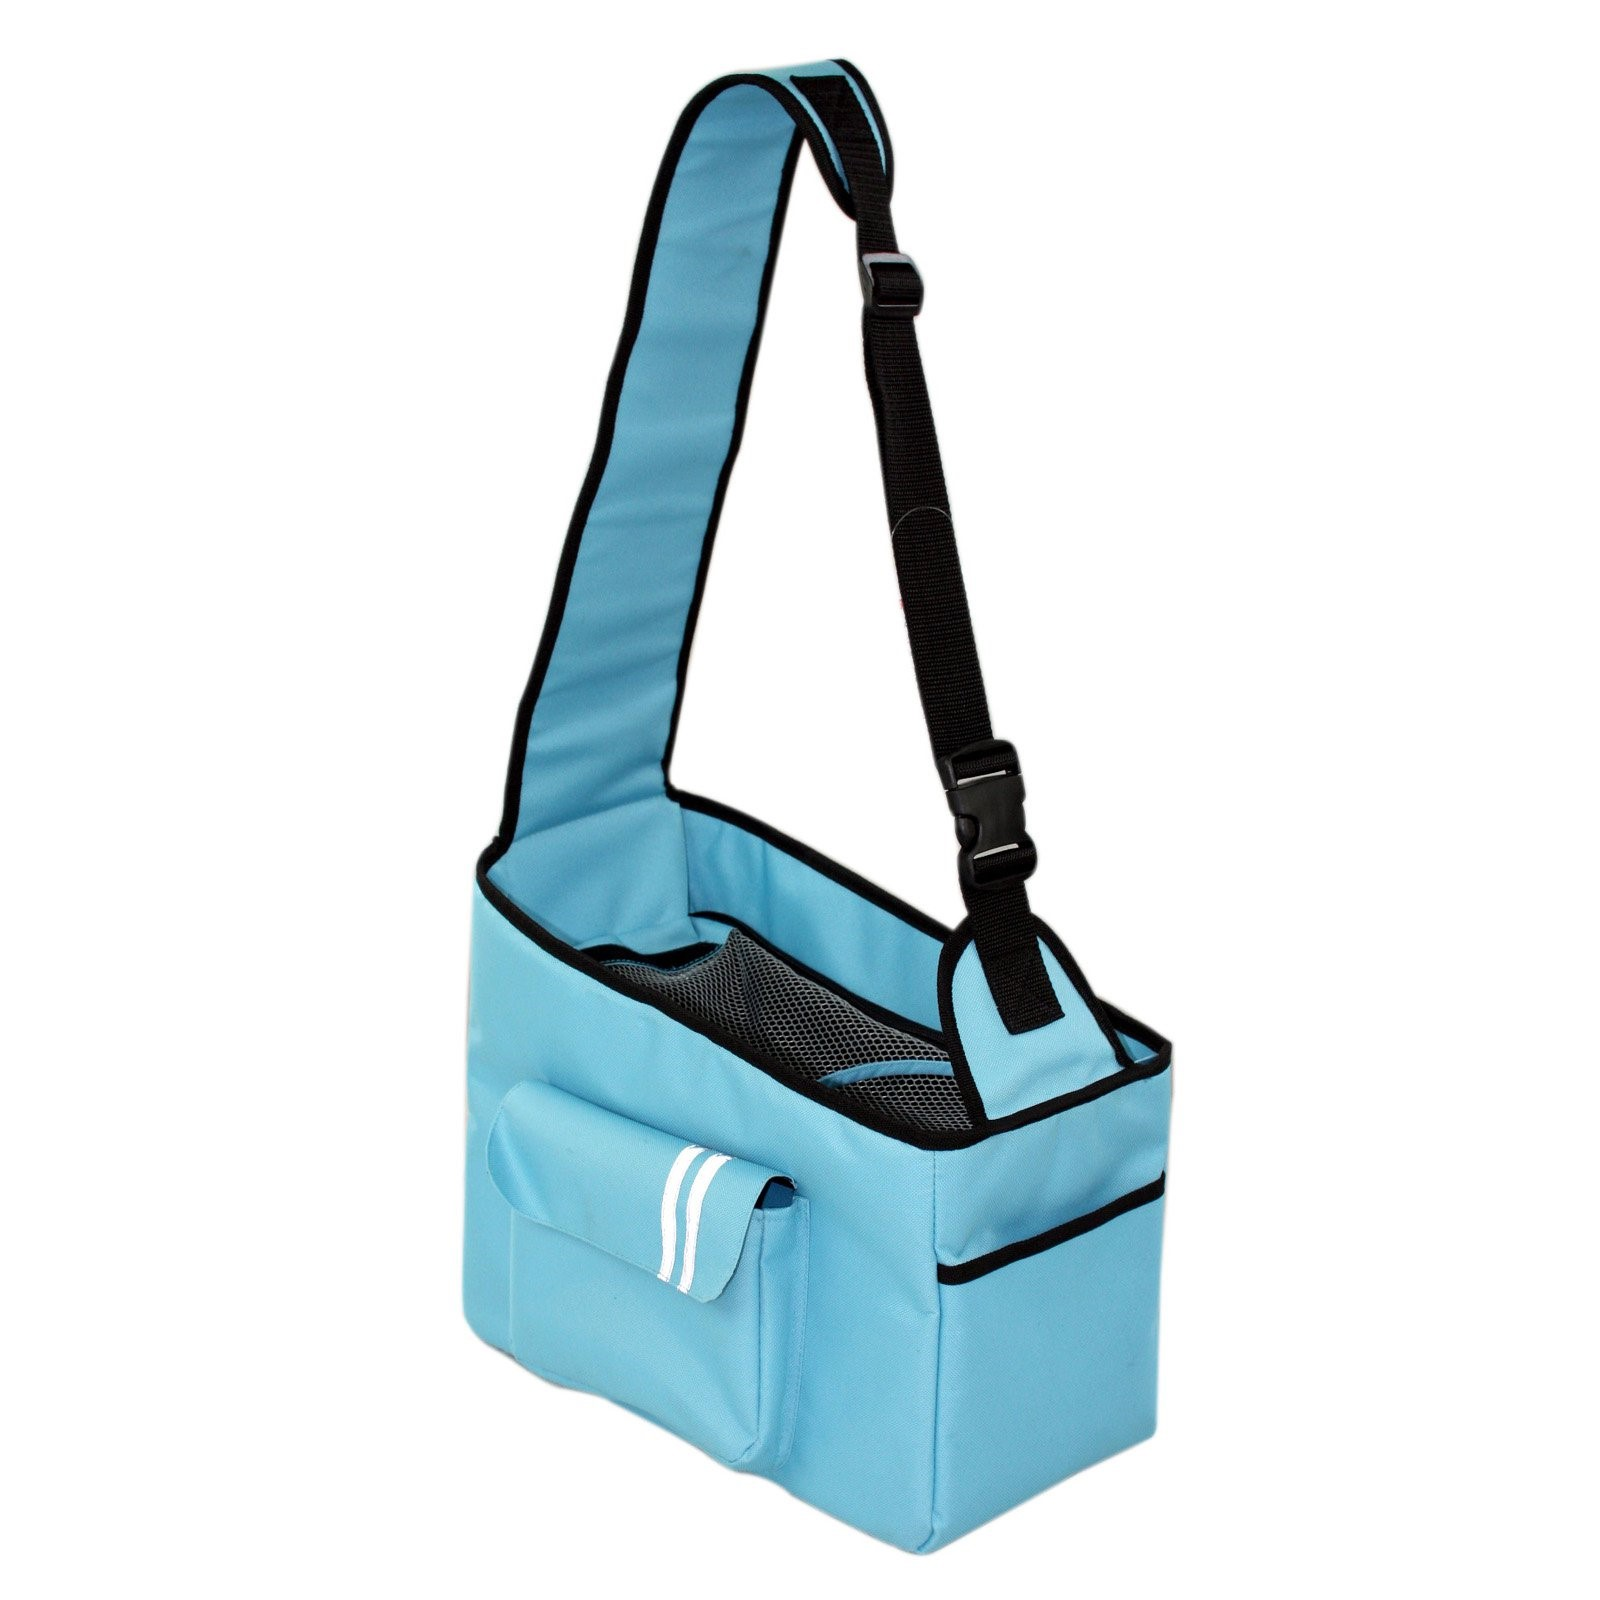 Fashion Back-Supportive Over-The-Shoulder Fashion Pet Carrier, Light Blue, One S by Pet Life